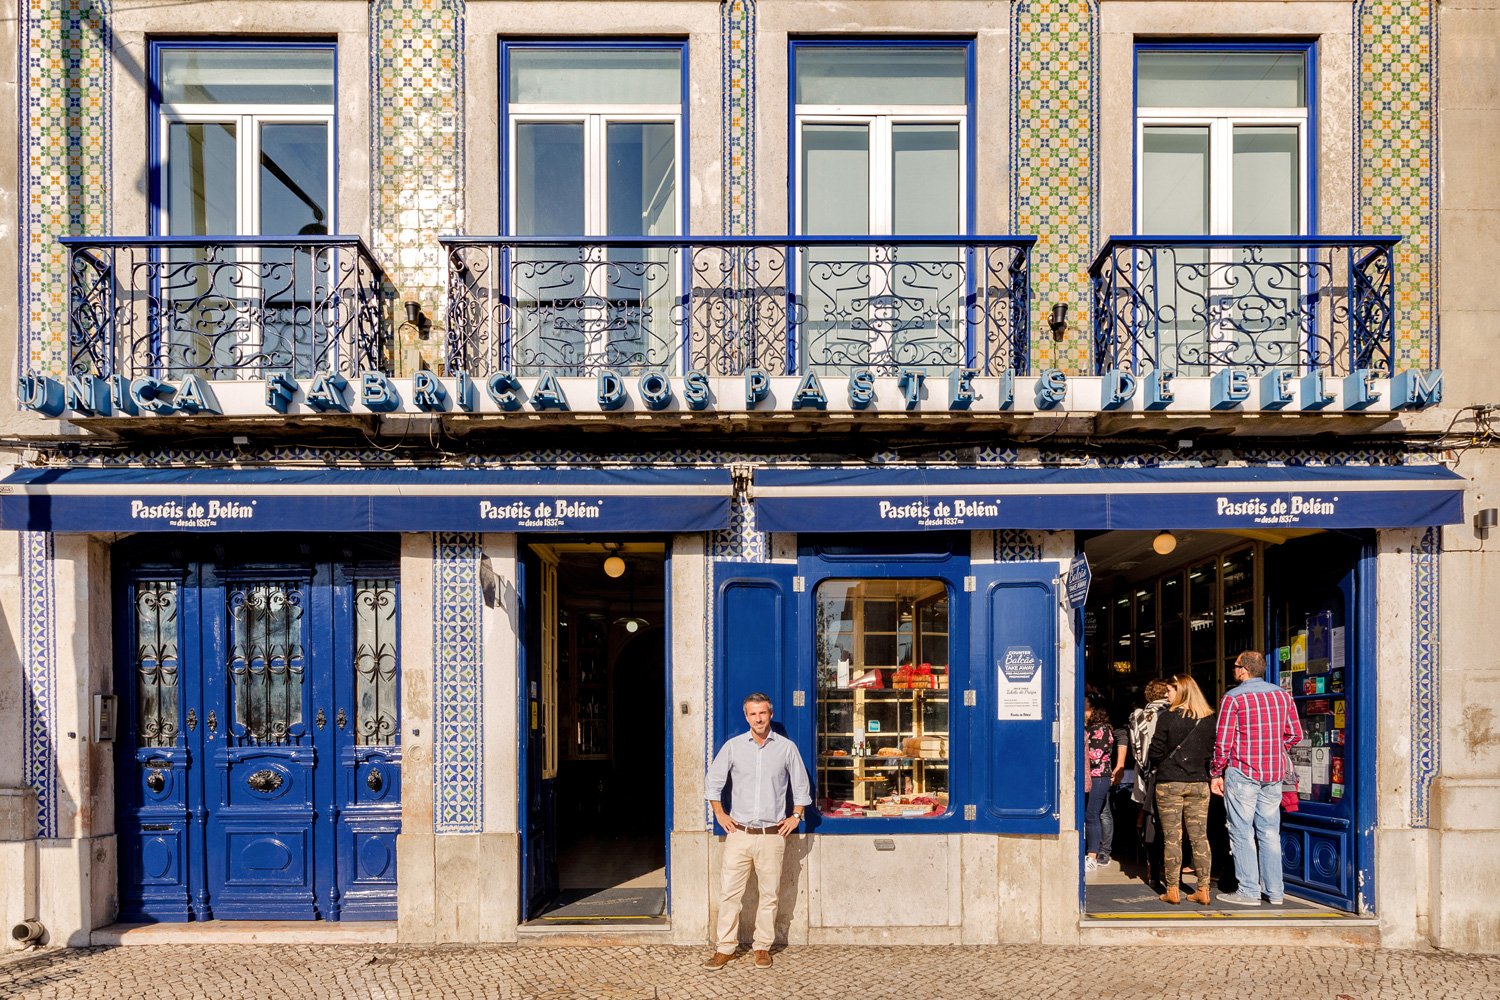 Miguel Clarinha runs what's more than a shop – it's a city landmark